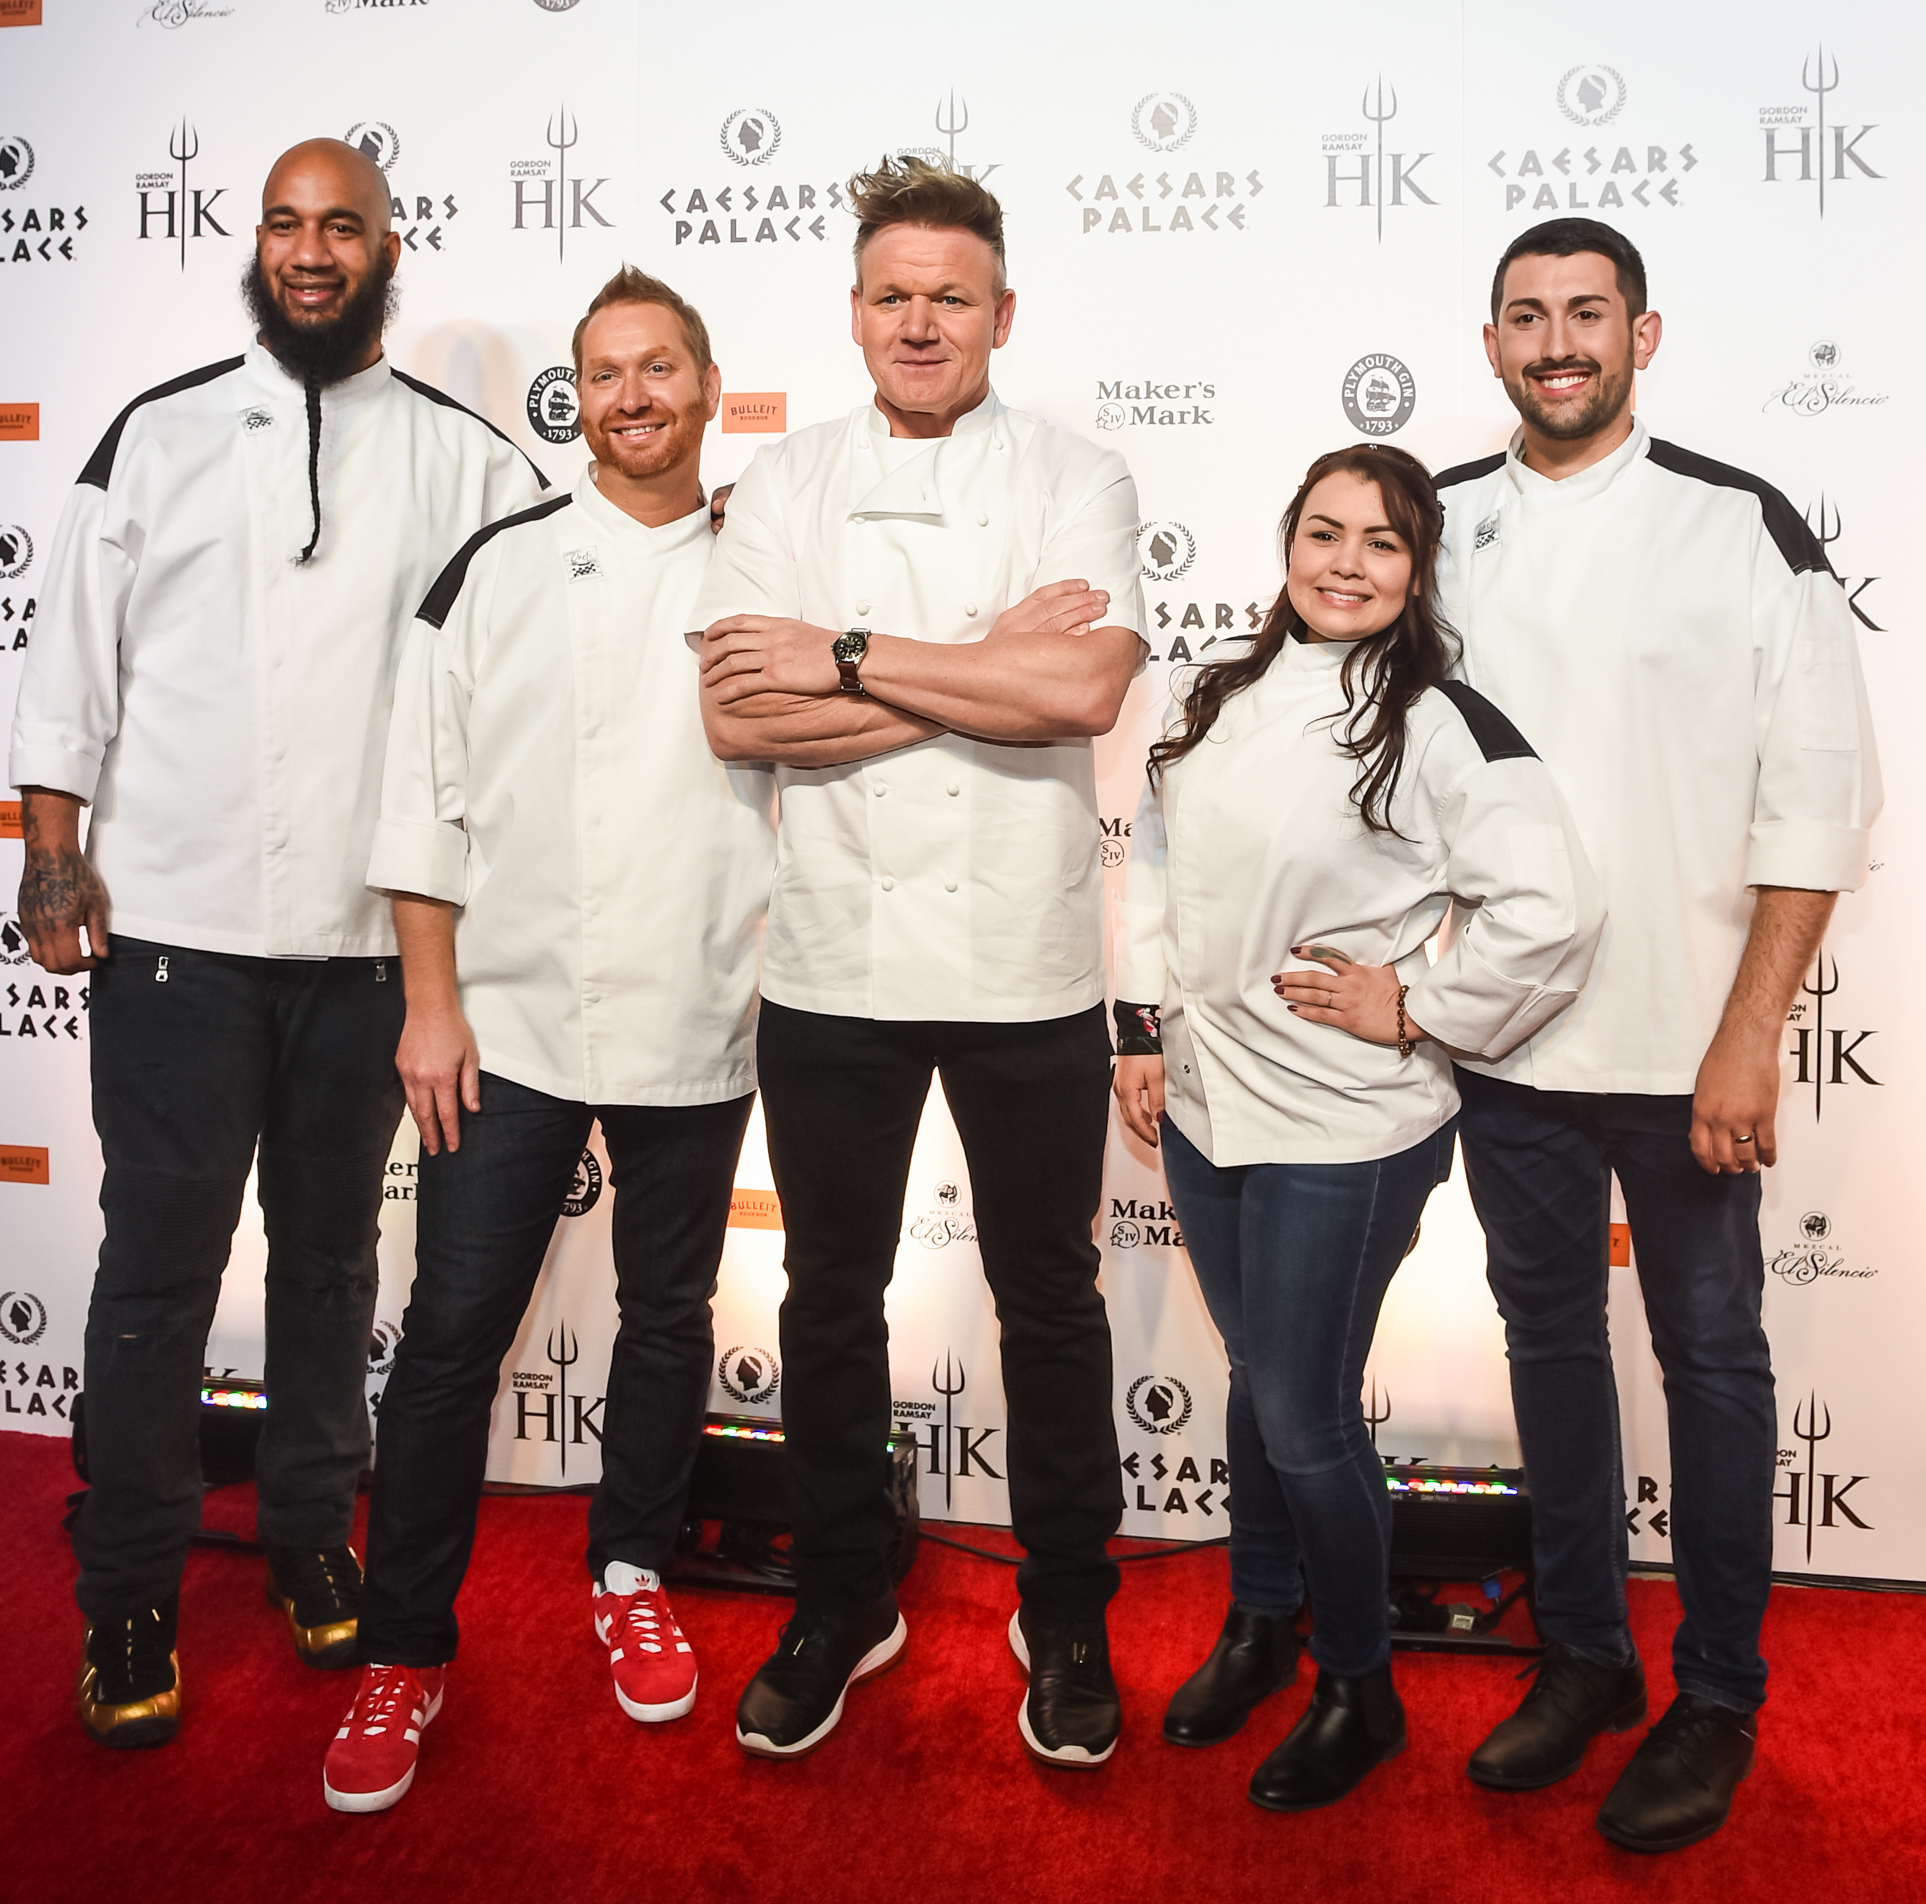 World S First Gordon Ramsay Hell S Kitchen Restaurant Marks